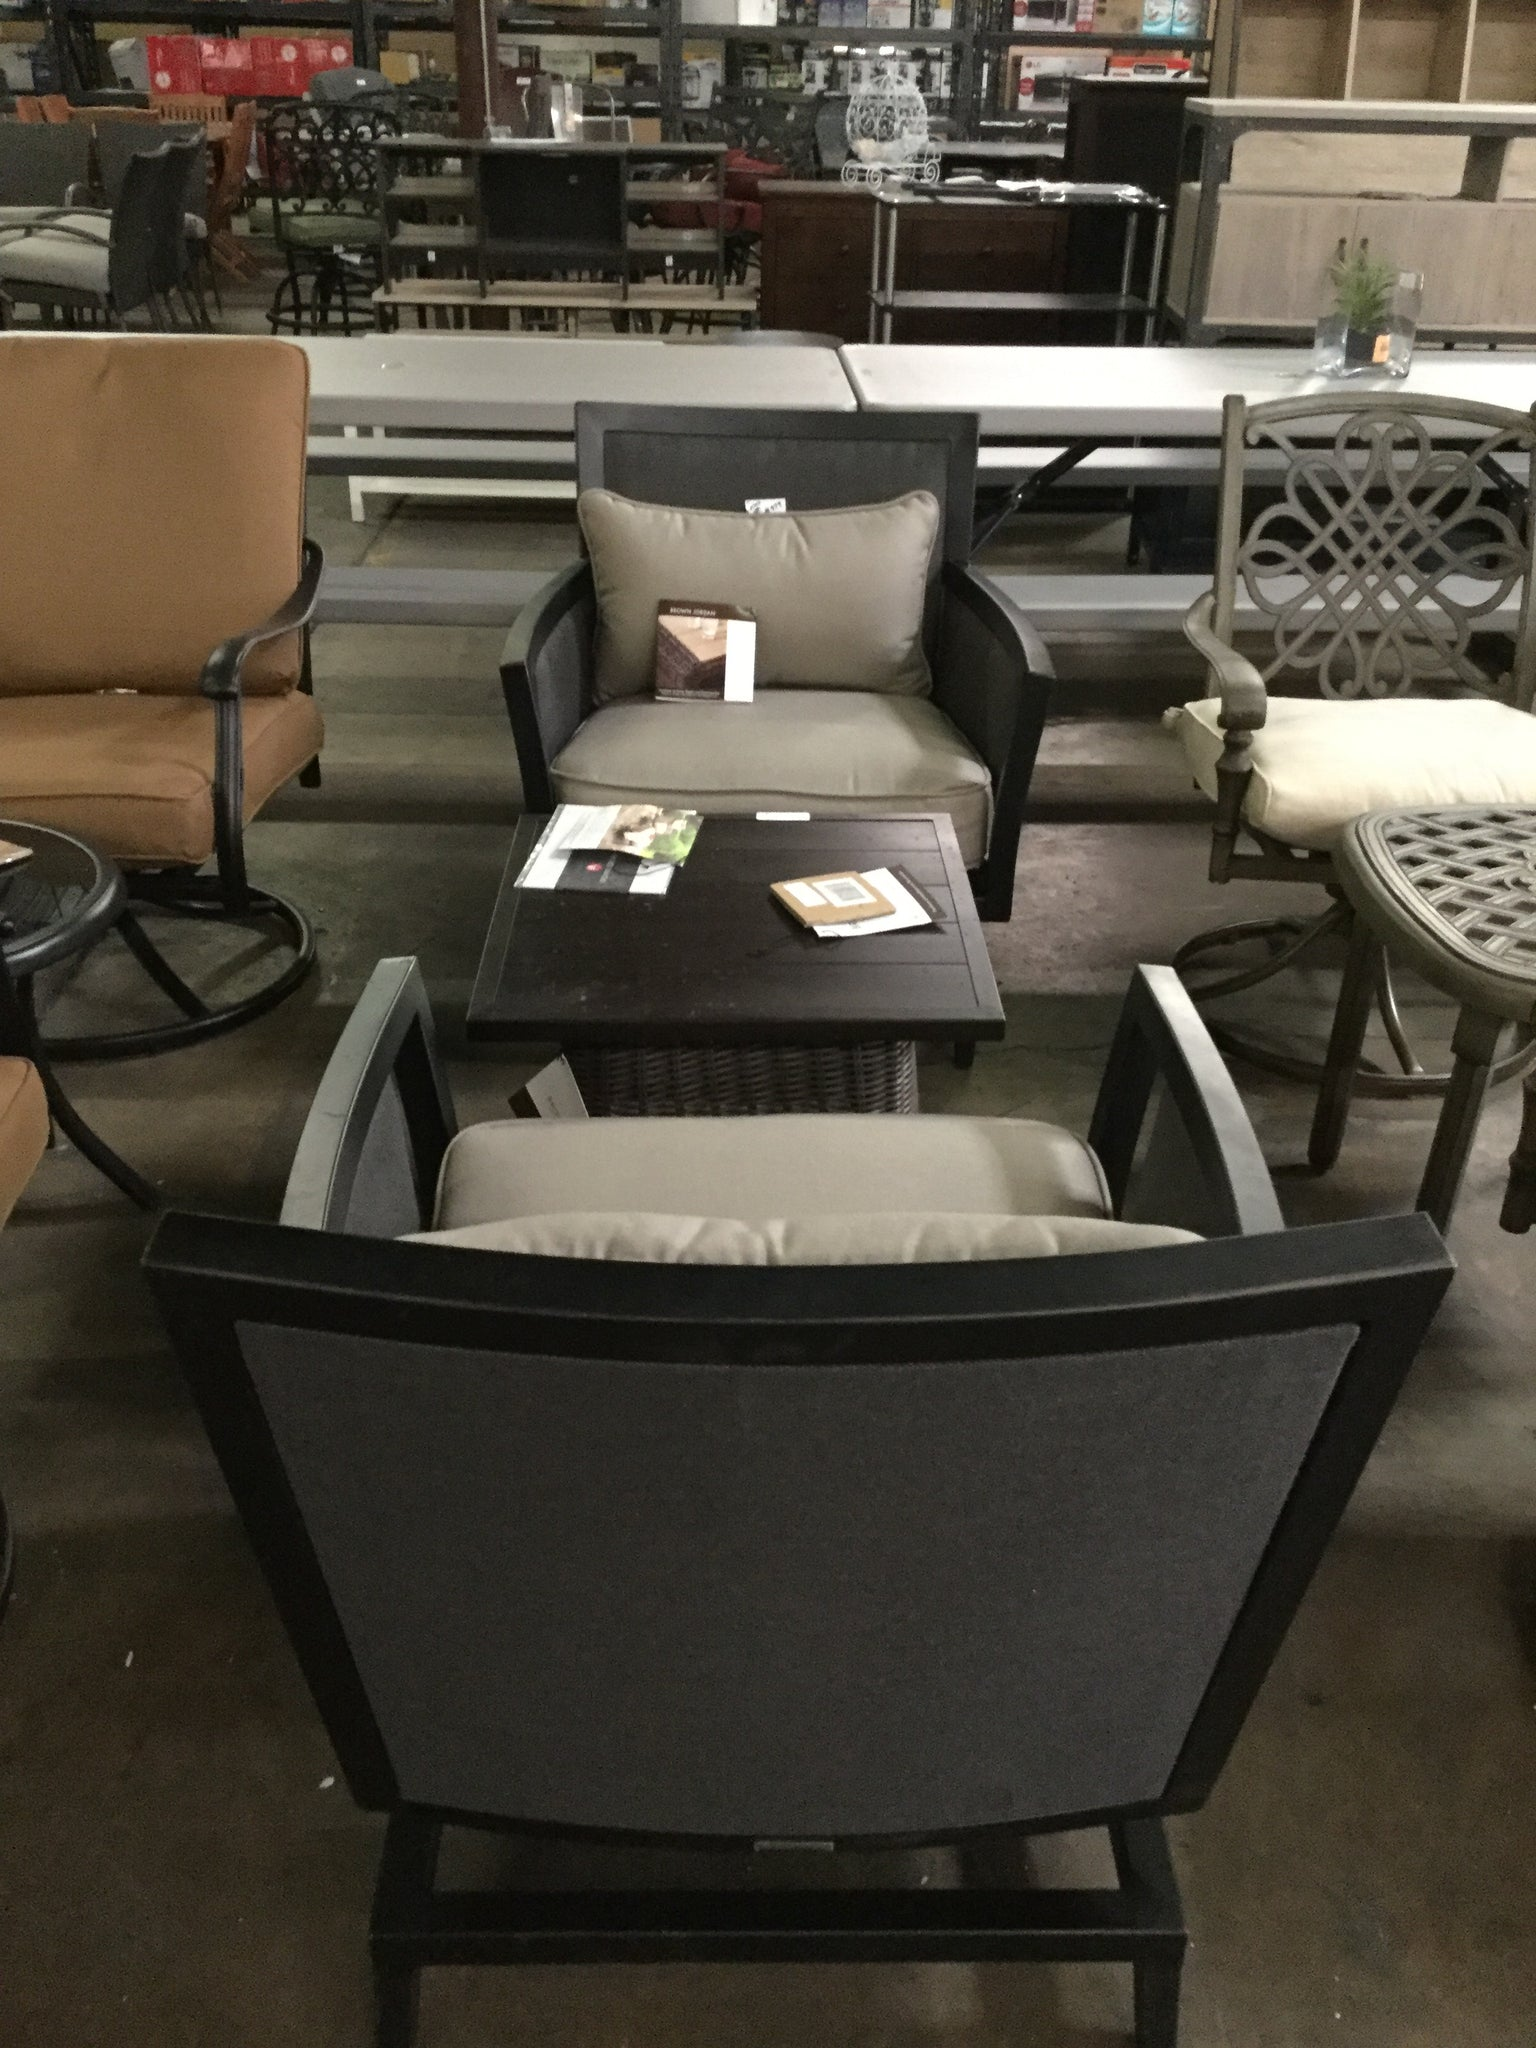 Groovy Greystone Patio Motion Lounge Chair In Sparrow 2 Pcs By Download Free Architecture Designs Intelgarnamadebymaigaardcom